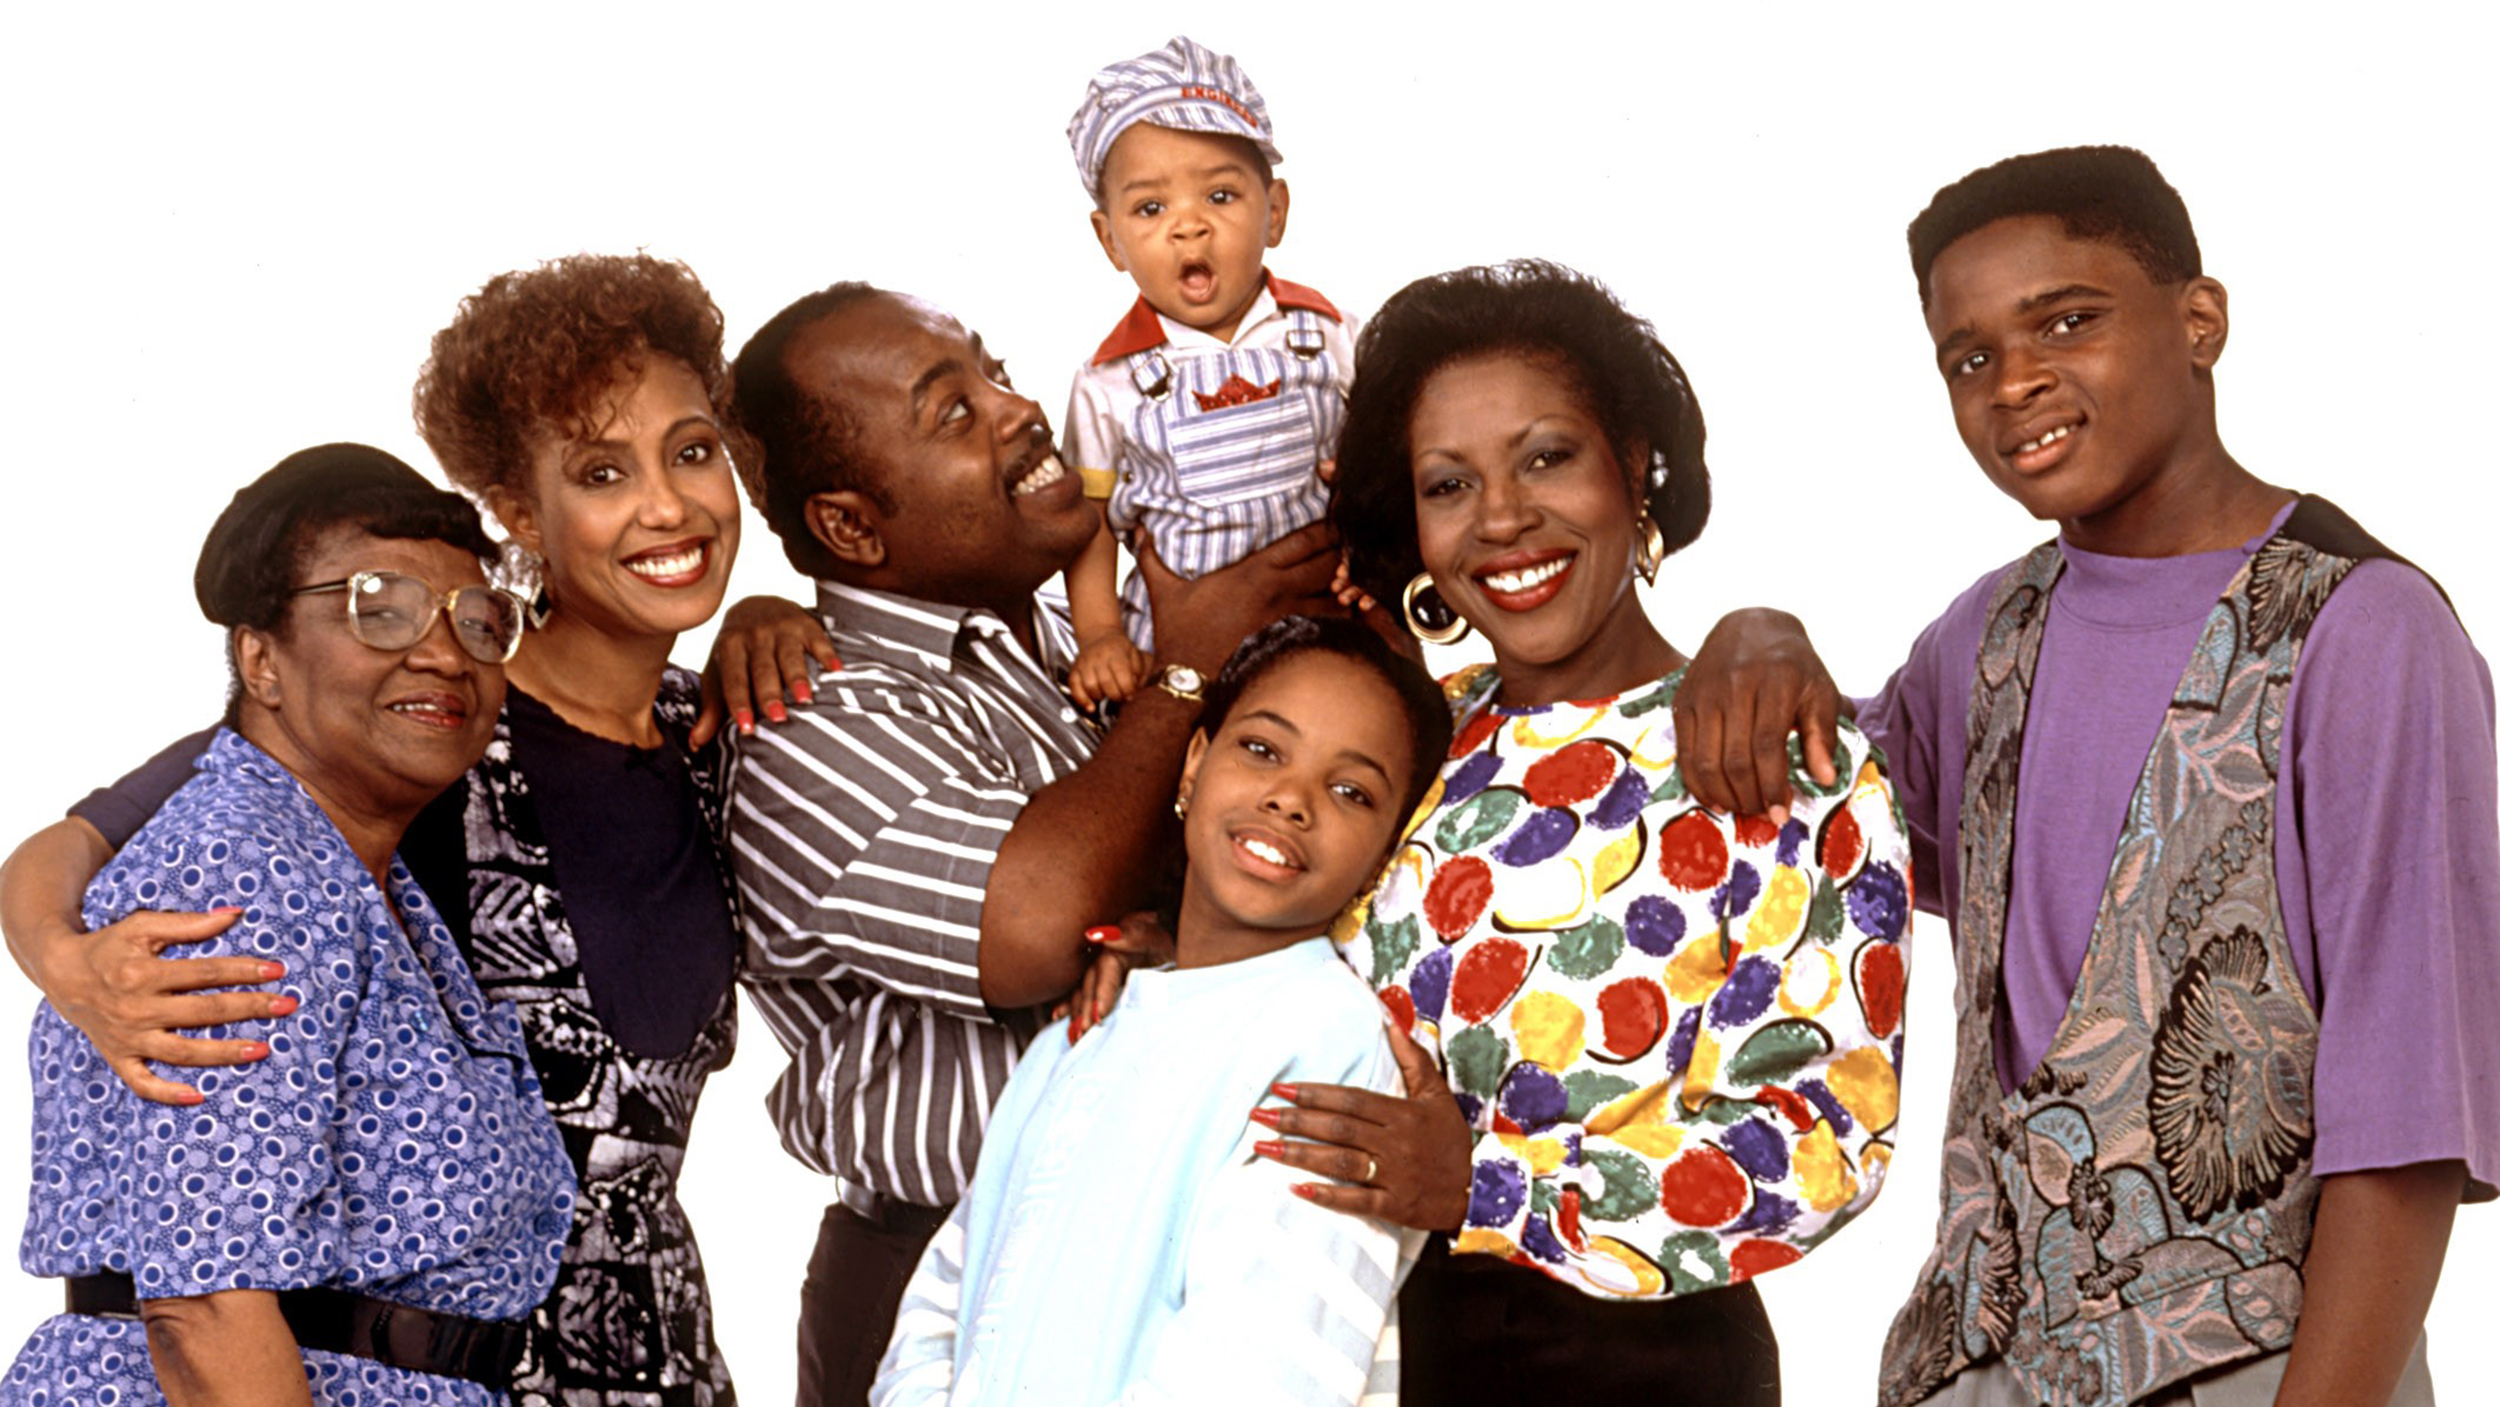 Family matters co stars reunite for holiday lifetime tv movie